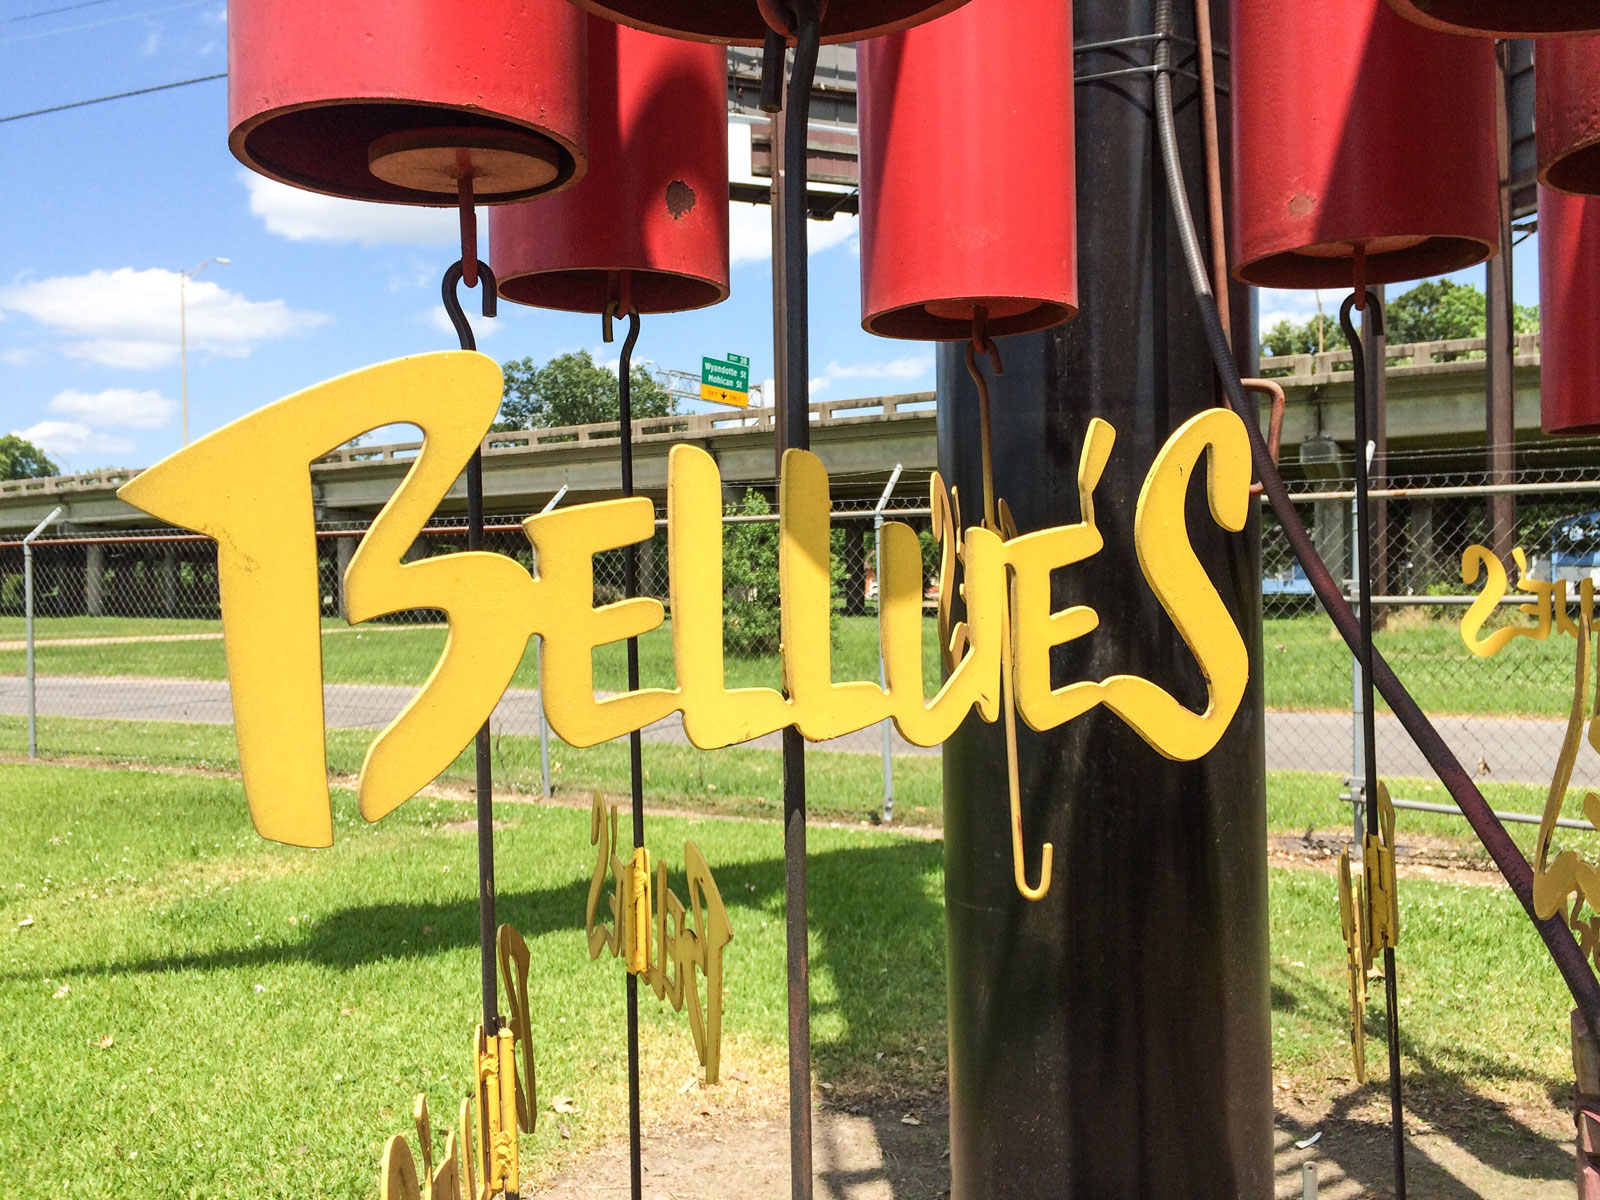 Bellue's Restaurant